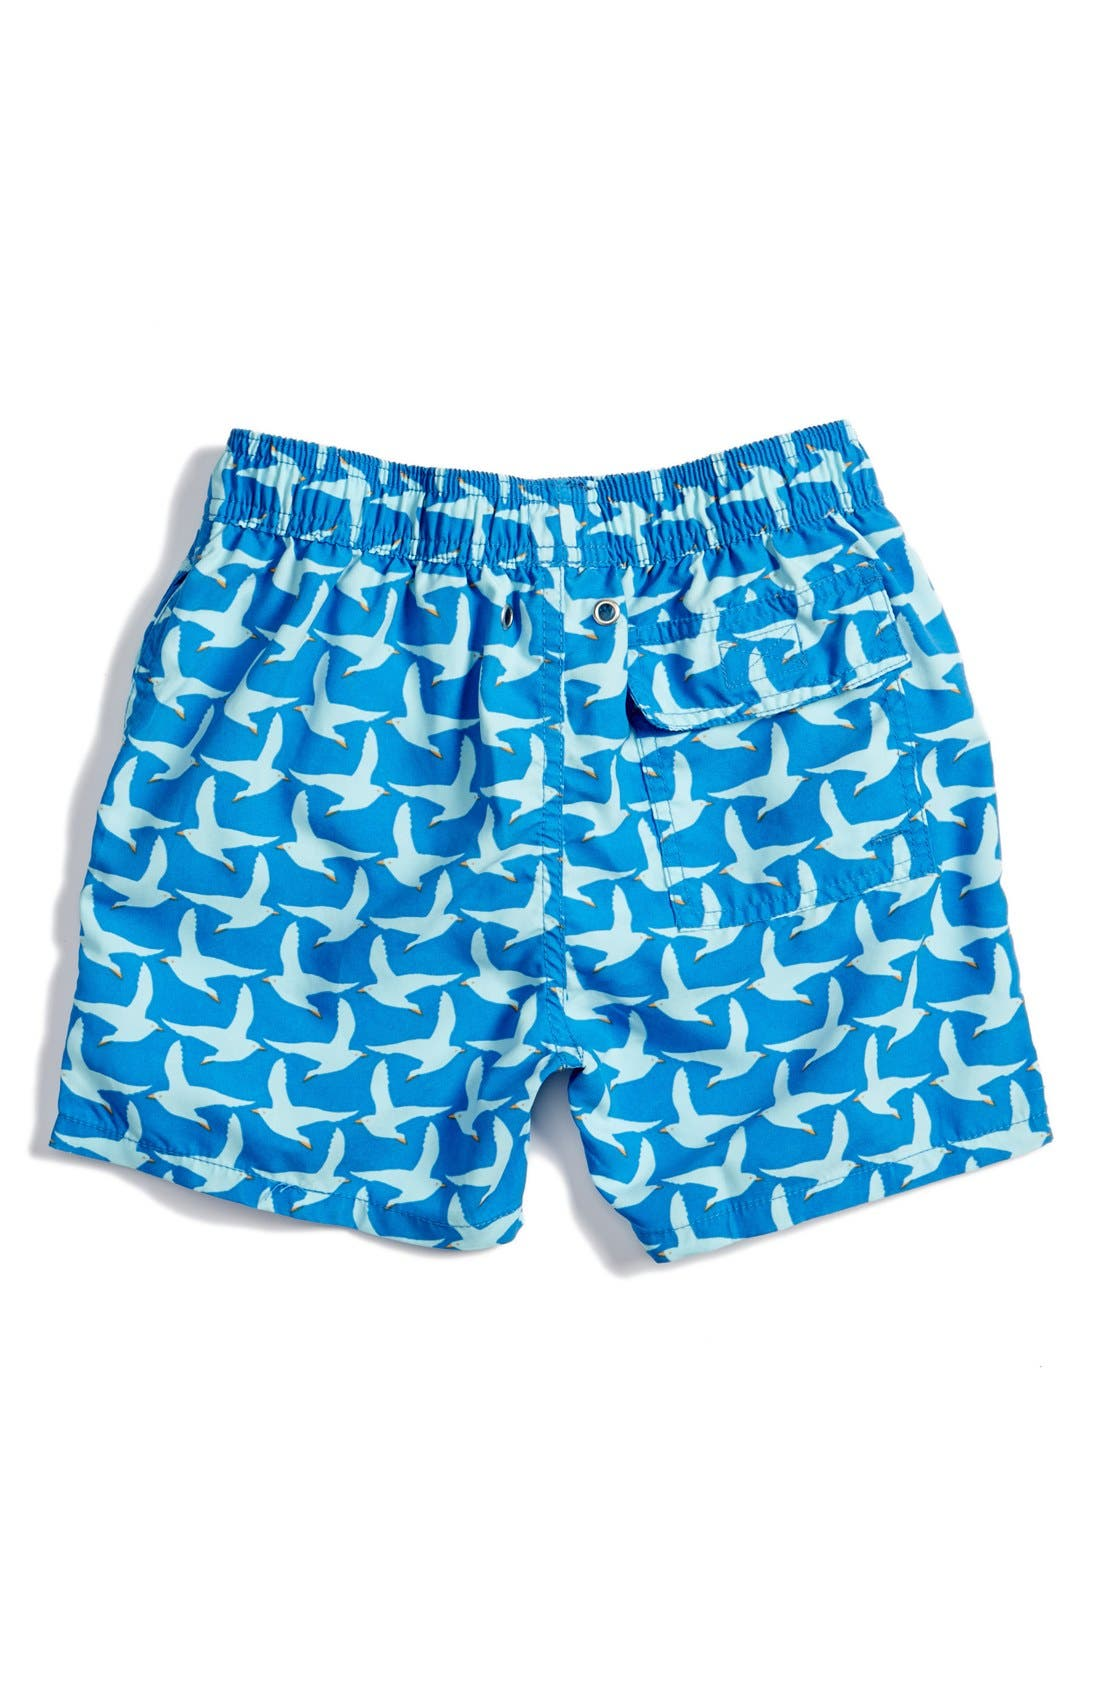 'Pattern Seagulls' Swim Trunks,                             Alternate thumbnail 2, color,                             COBALT BLUE